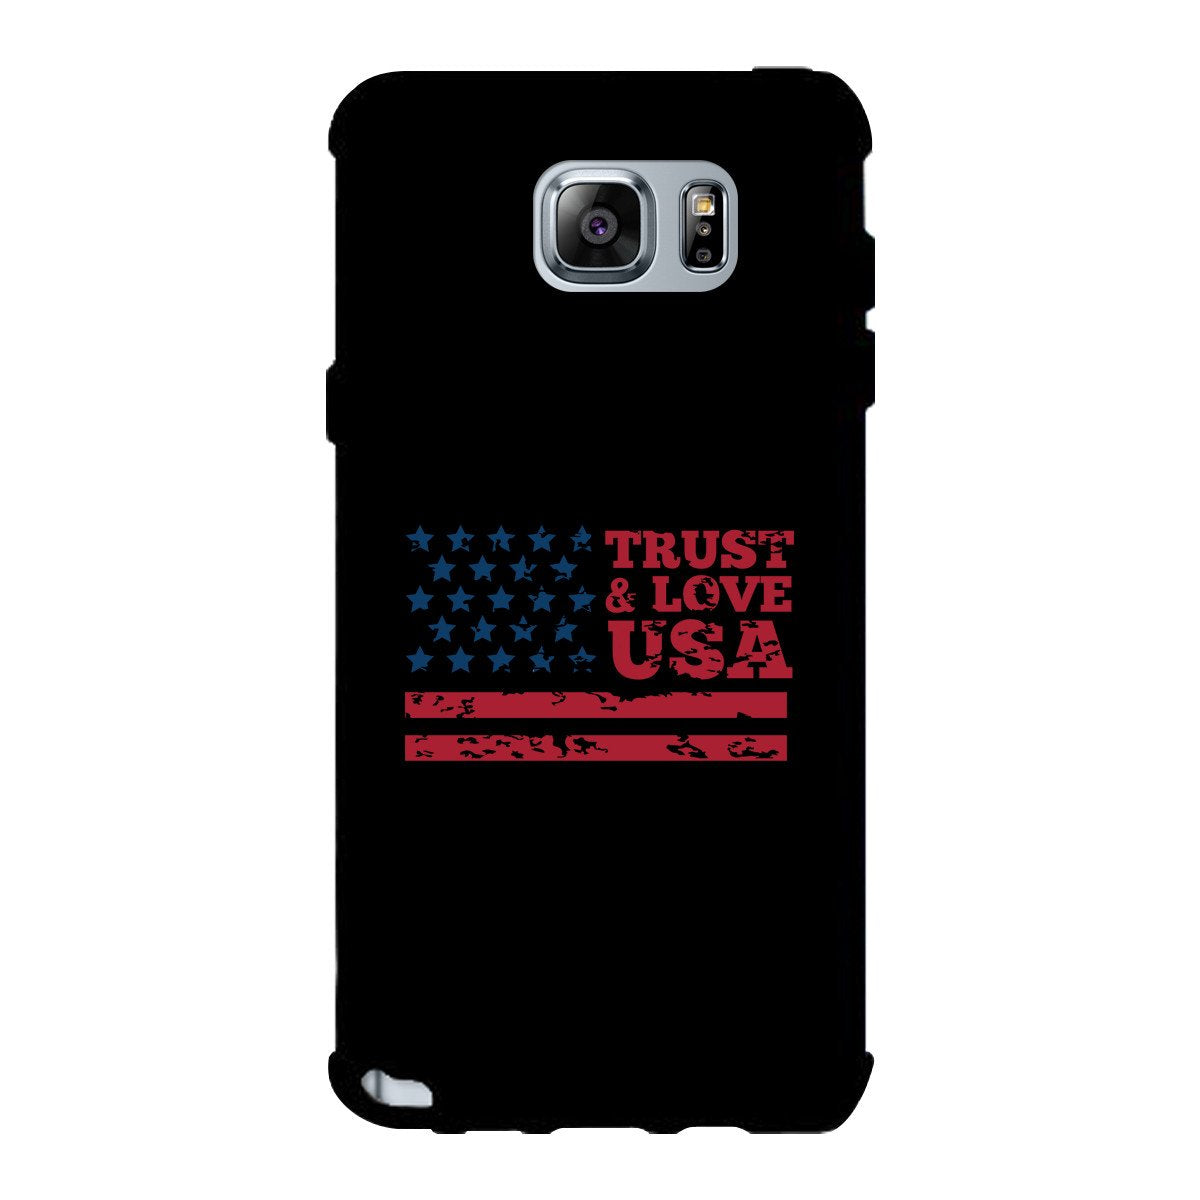 Trust & Love Usa Black Phone Case